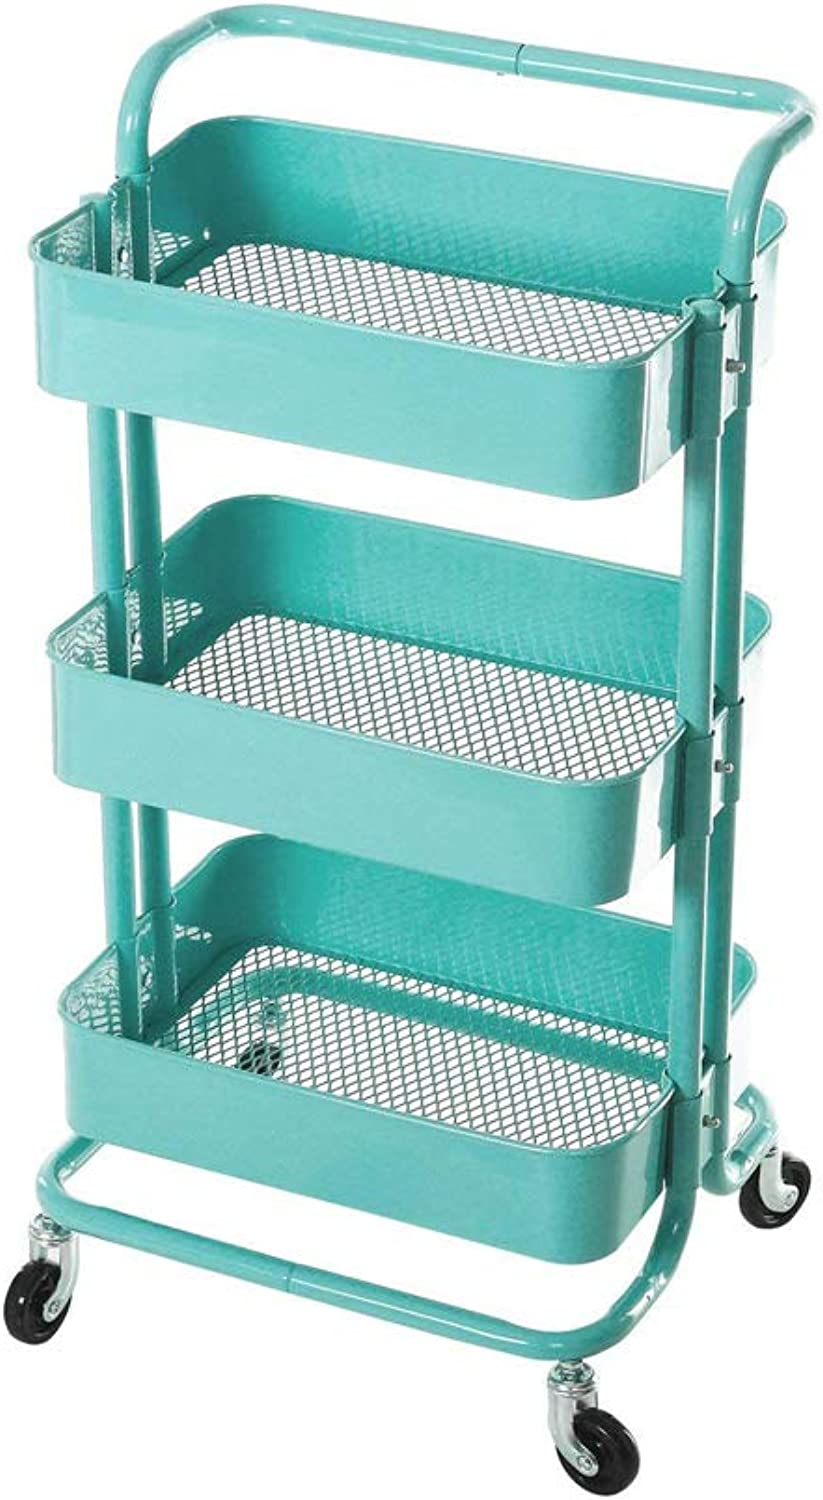 3-Tier Metal Utility Service Cart Rolling Storage Shelves with Handles,Storage Utility Cart,bluee